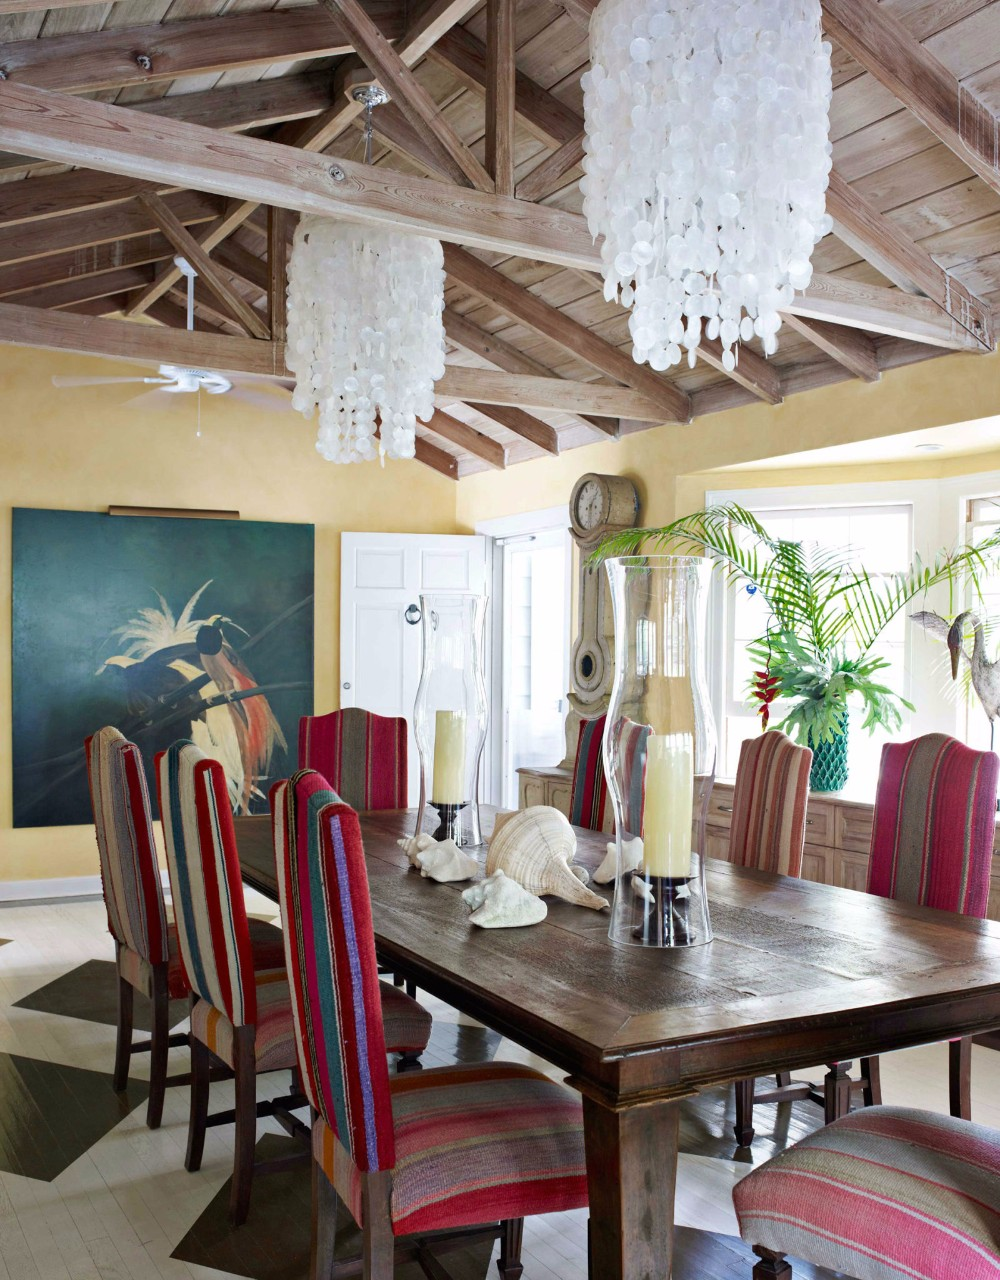 dining room 15 Best Colors for Dining Rooms 54c0d5646b4ae   bx peruvian wedding blanket chairs pulitzer calhoun 0613 s2